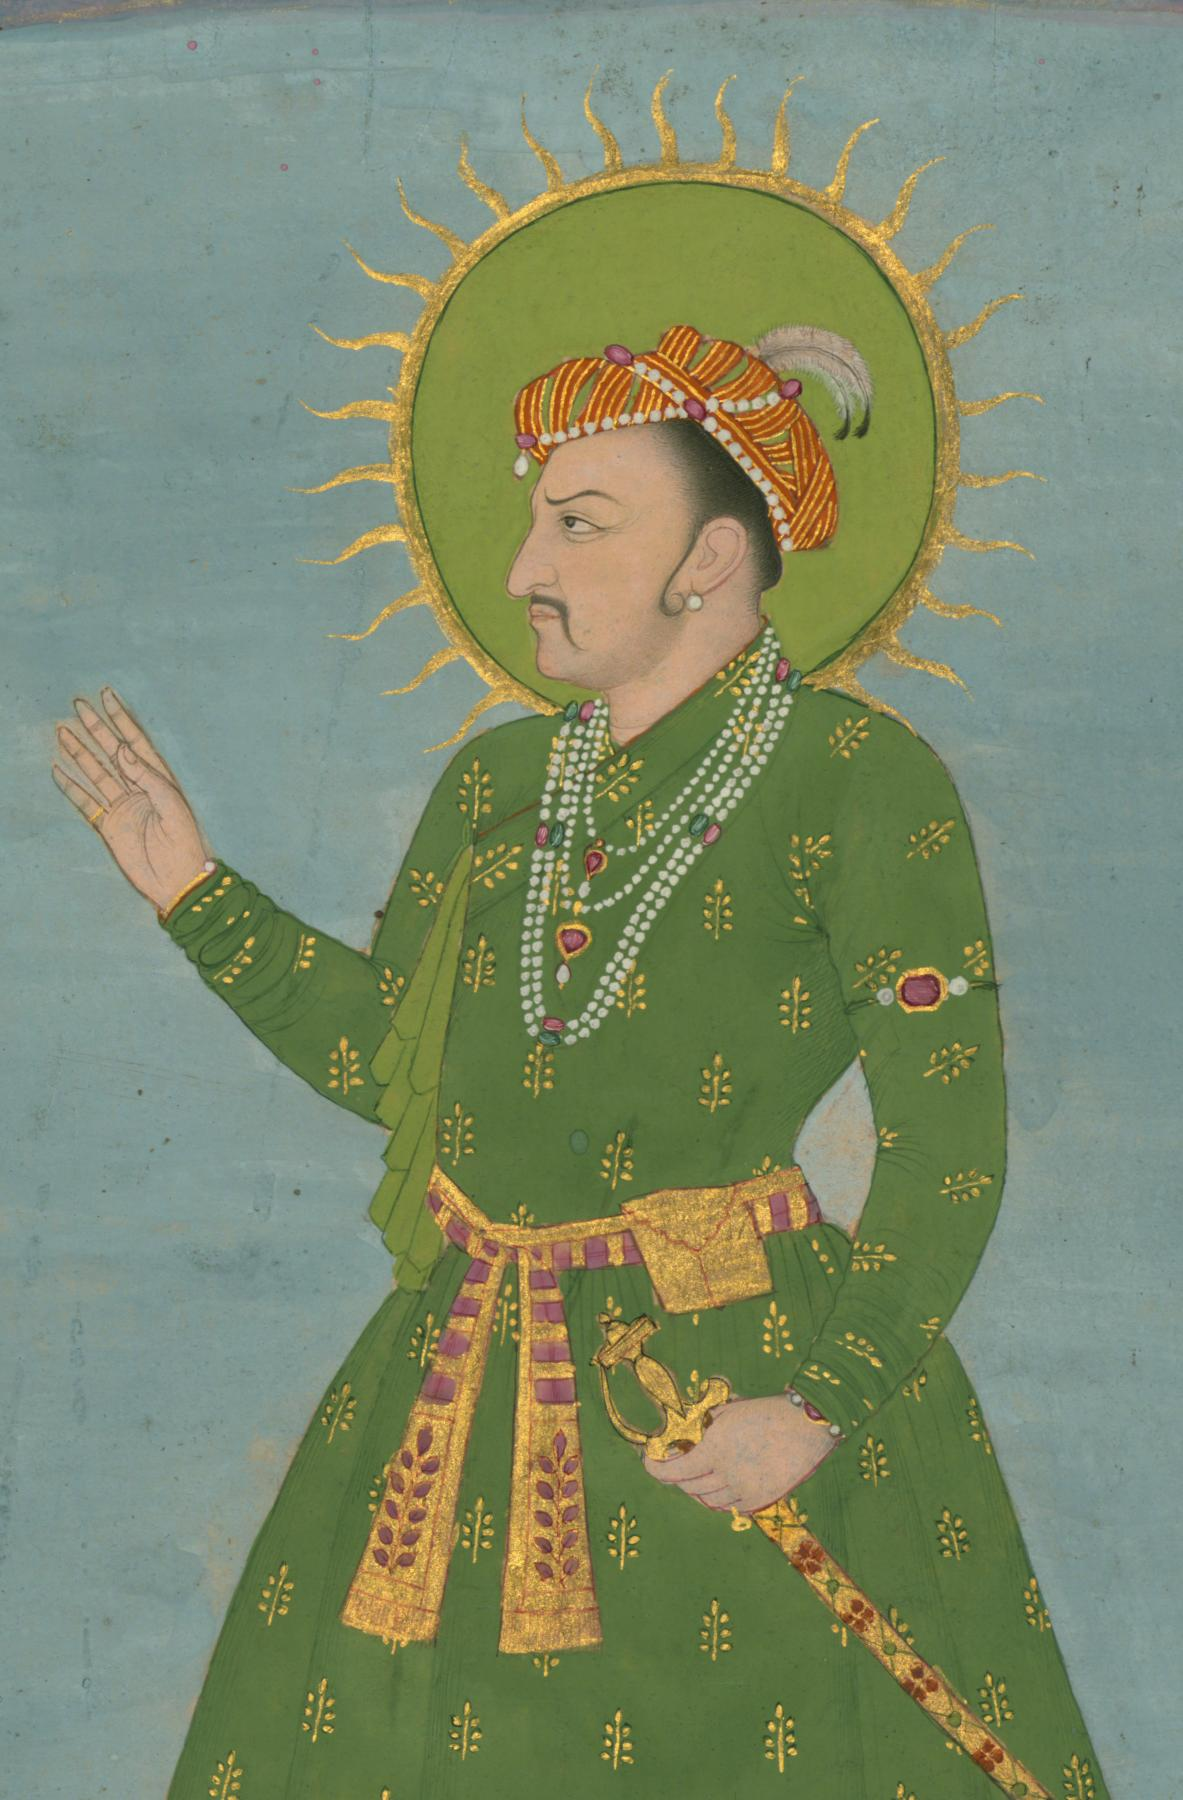 Indian_-_Single_Leaf_of_a_Portrait_of_the_Emperor_Jahangir_-_Walters_W705_-_Detail